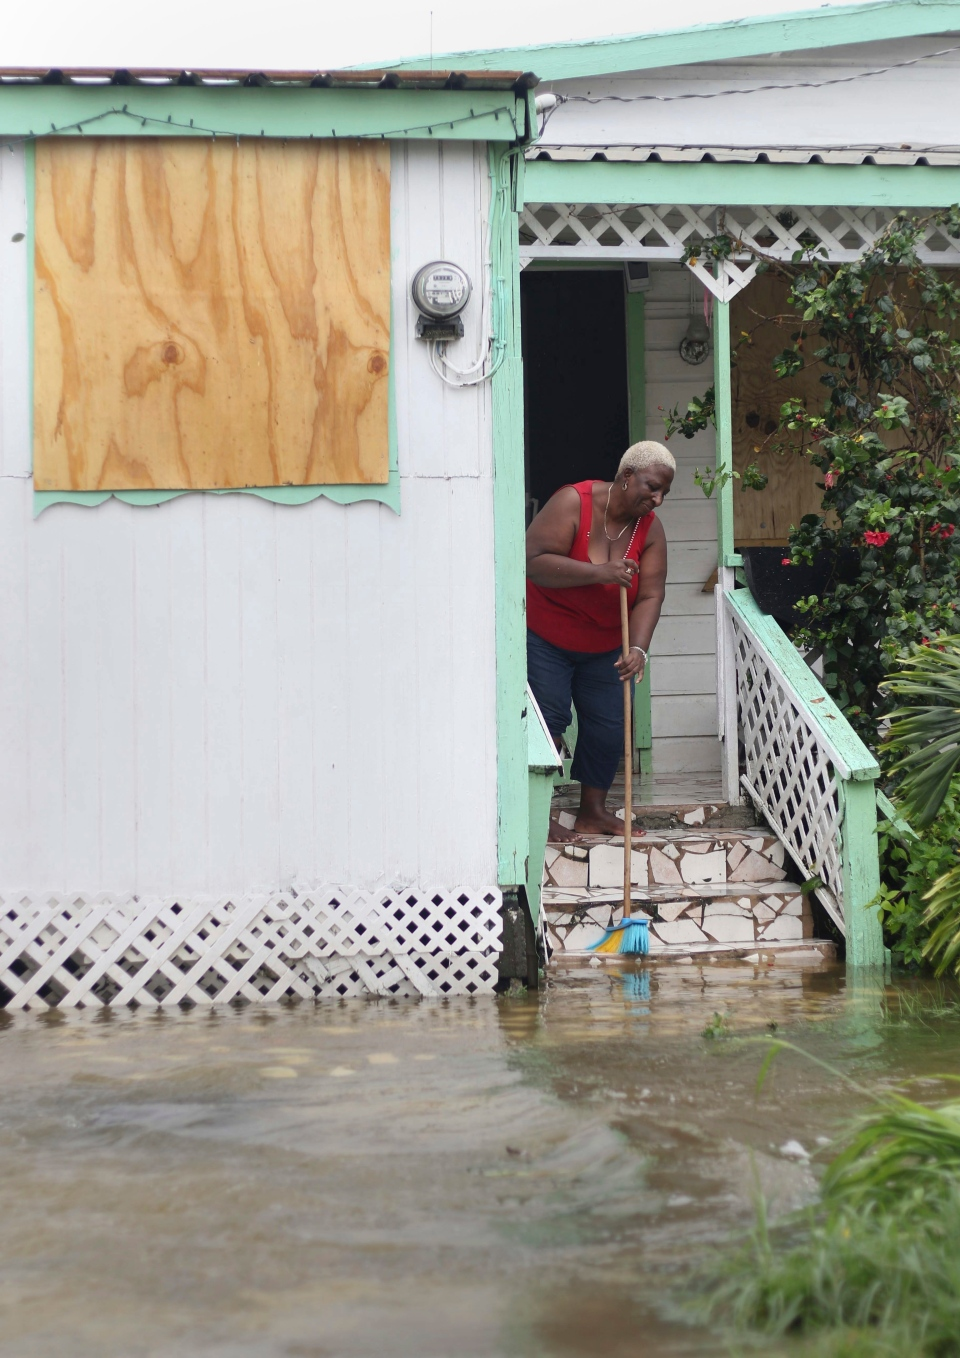 A woman pushes out floodwaters on her property after the passing of Hurricane Irma, in St. John's, Antigua and Barbuda, Wednesday, Sept. 6, 2017. (AP Photo/Johnny Jno-Baptiste)